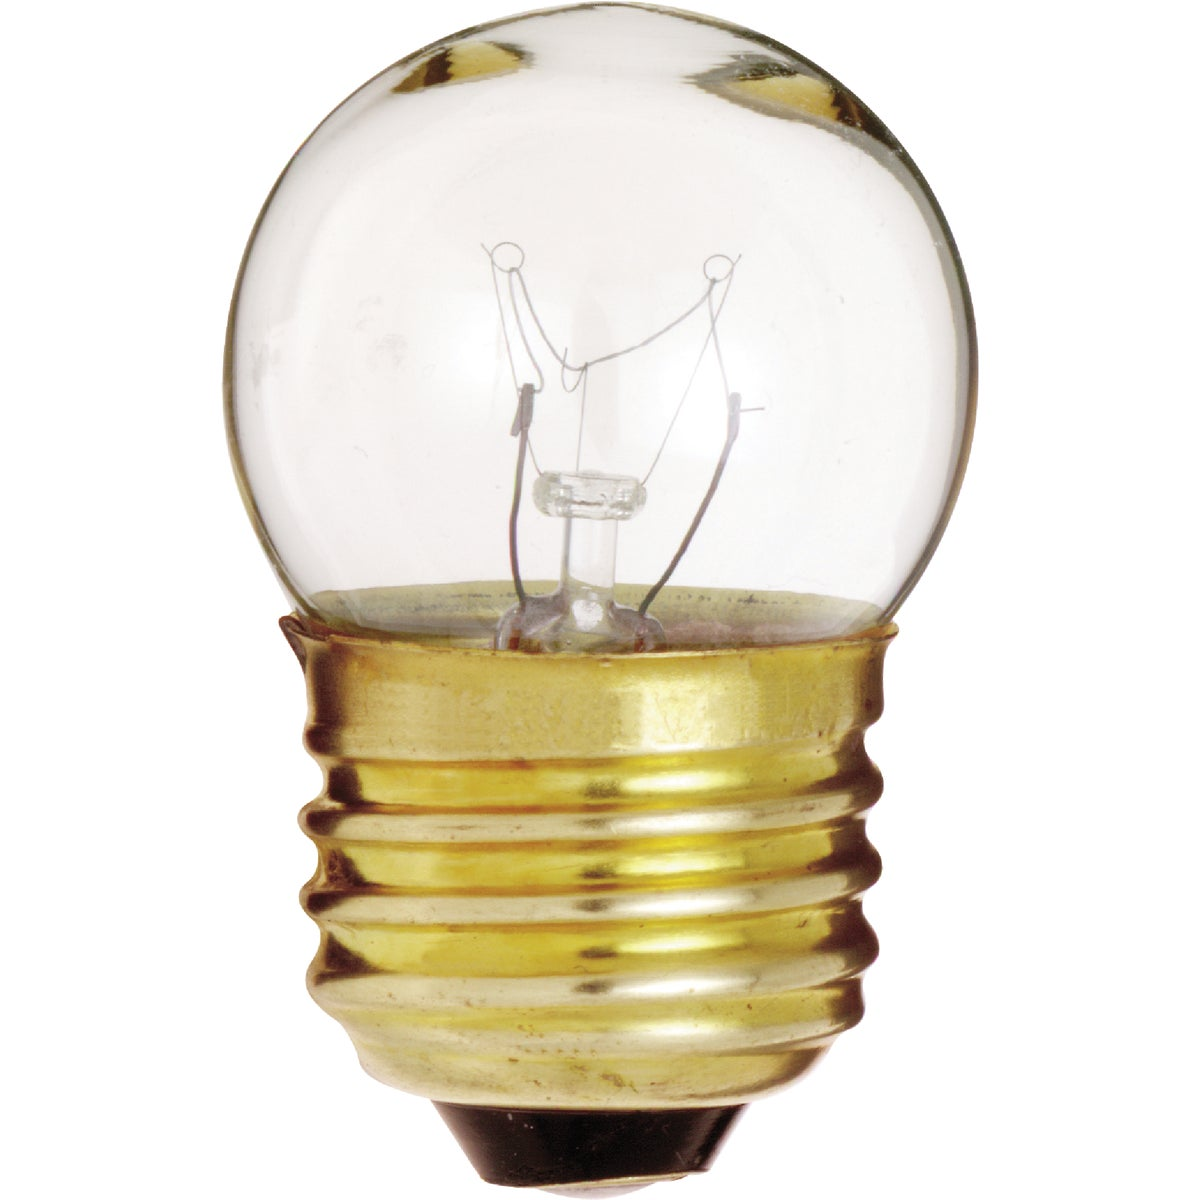 7-1/2W CLR UTILITY BULB - 46844 7-1/2S by G E Lighting